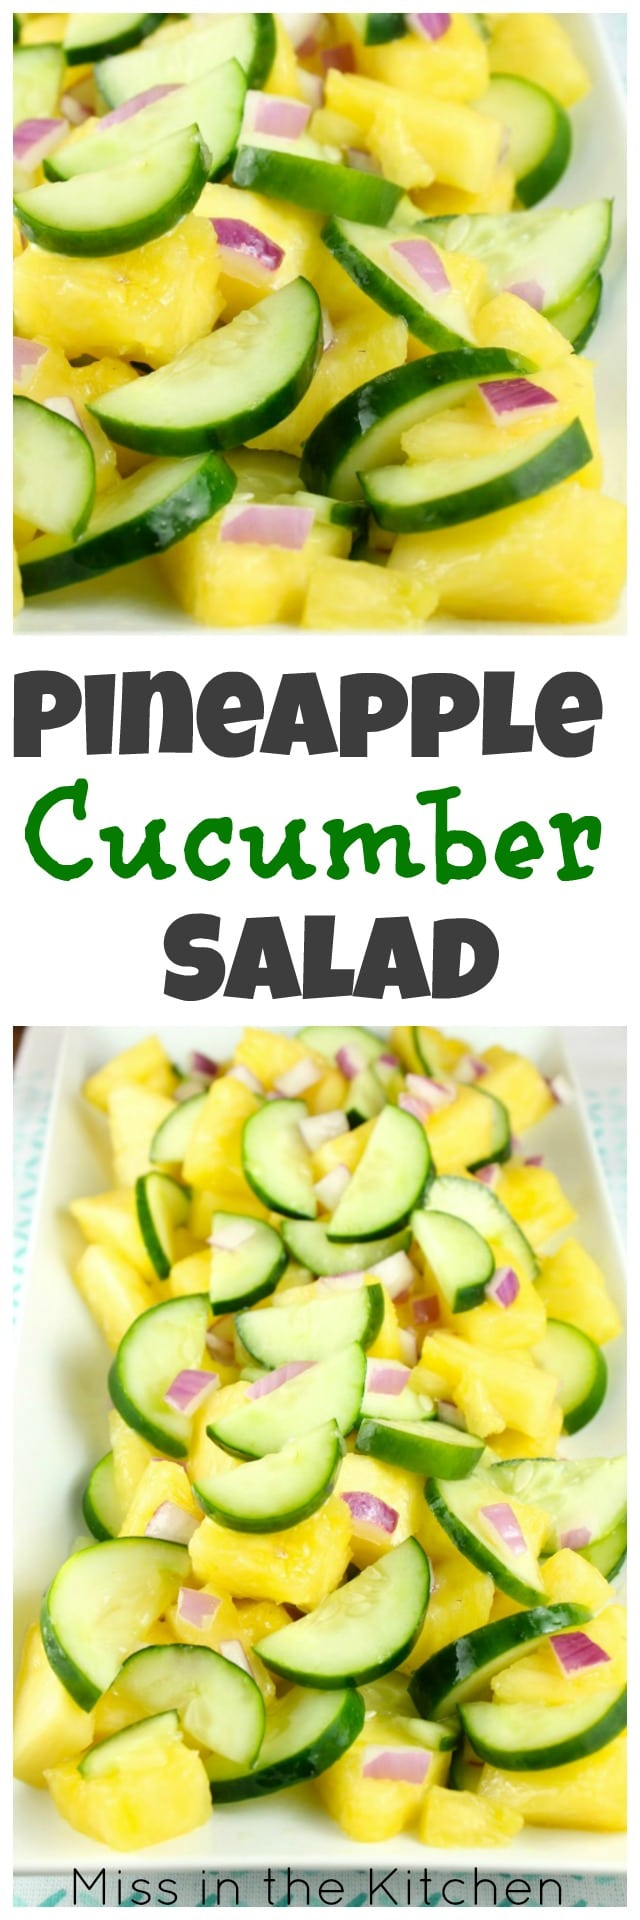 Recipe for Pineapple Cucumber Salad from Miss in the Kitchen